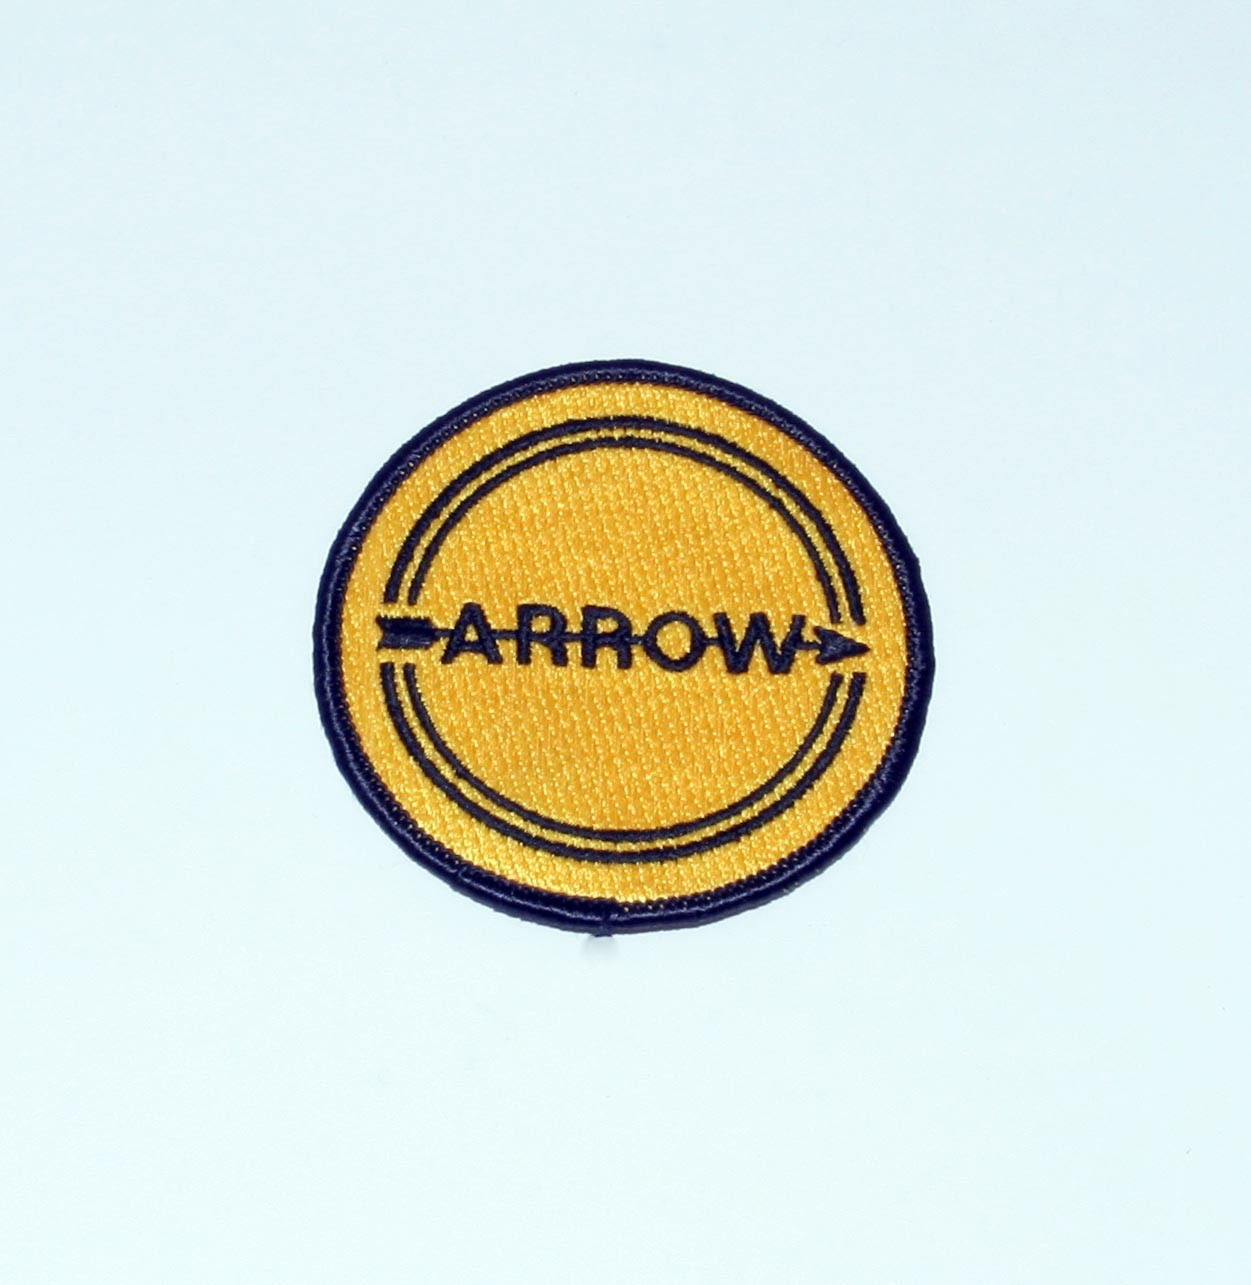 ARROW ENGINE RACESUIT BADGE 75 DIA